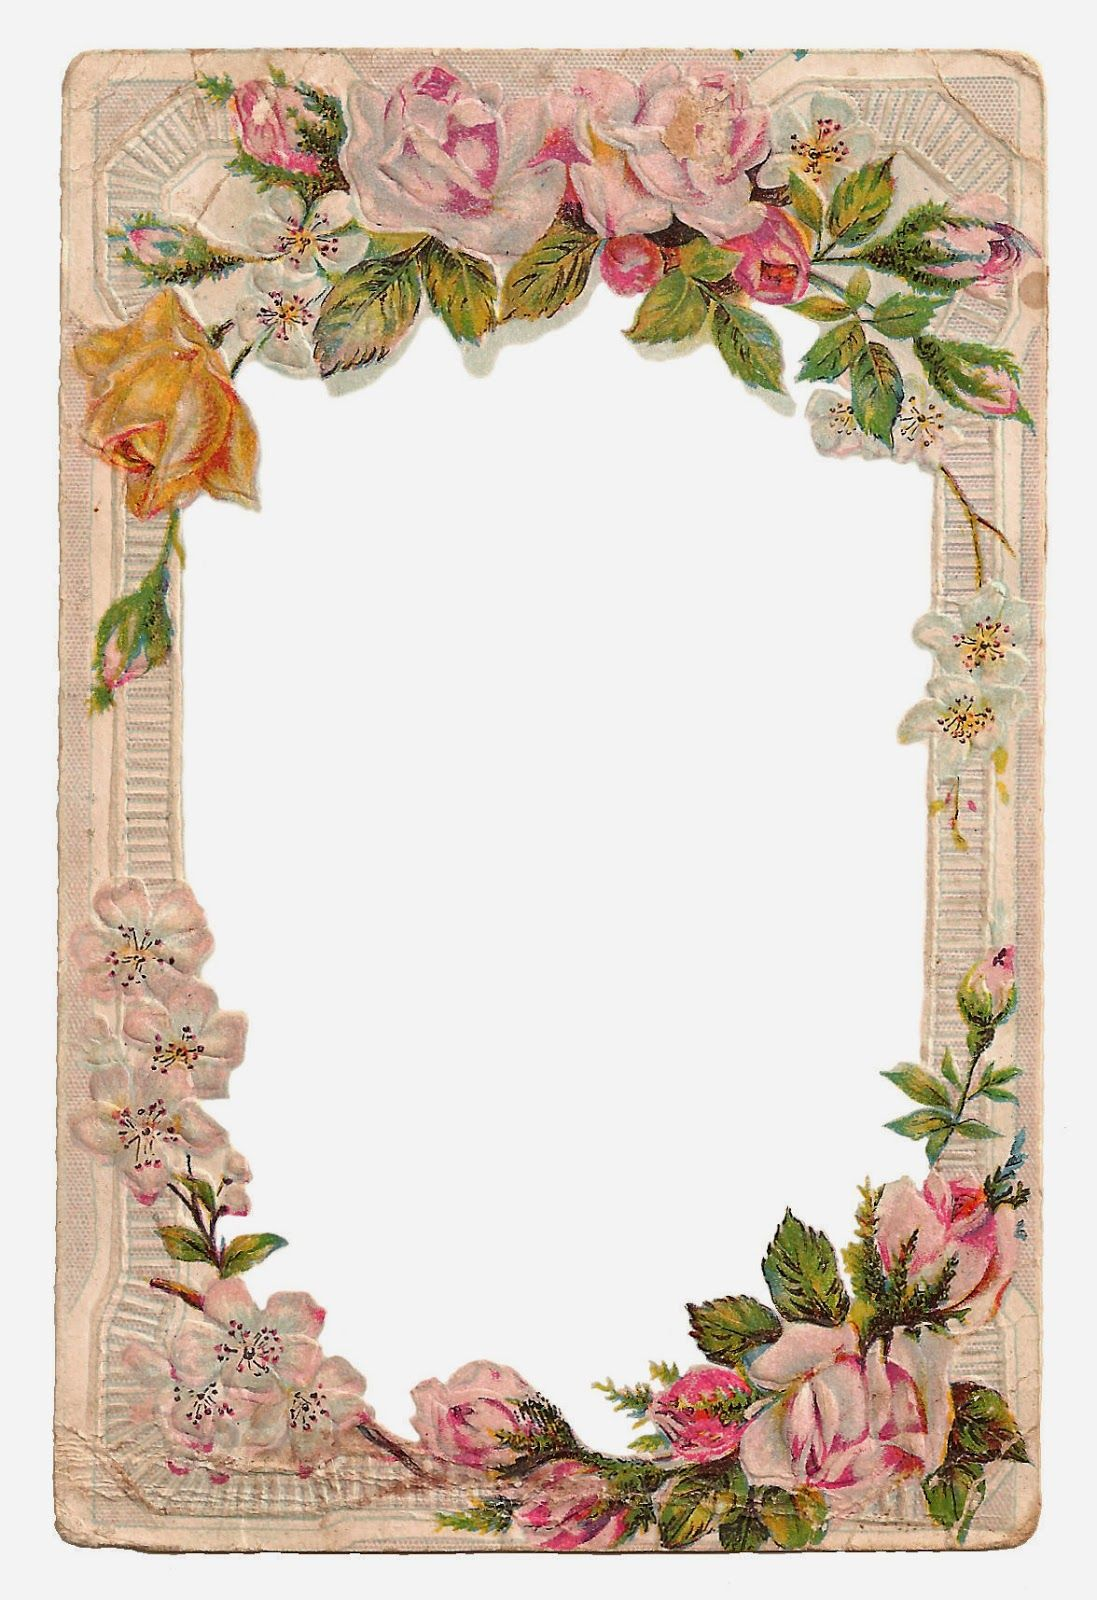 Antique Images Free Digital Flower Frame with Roses and